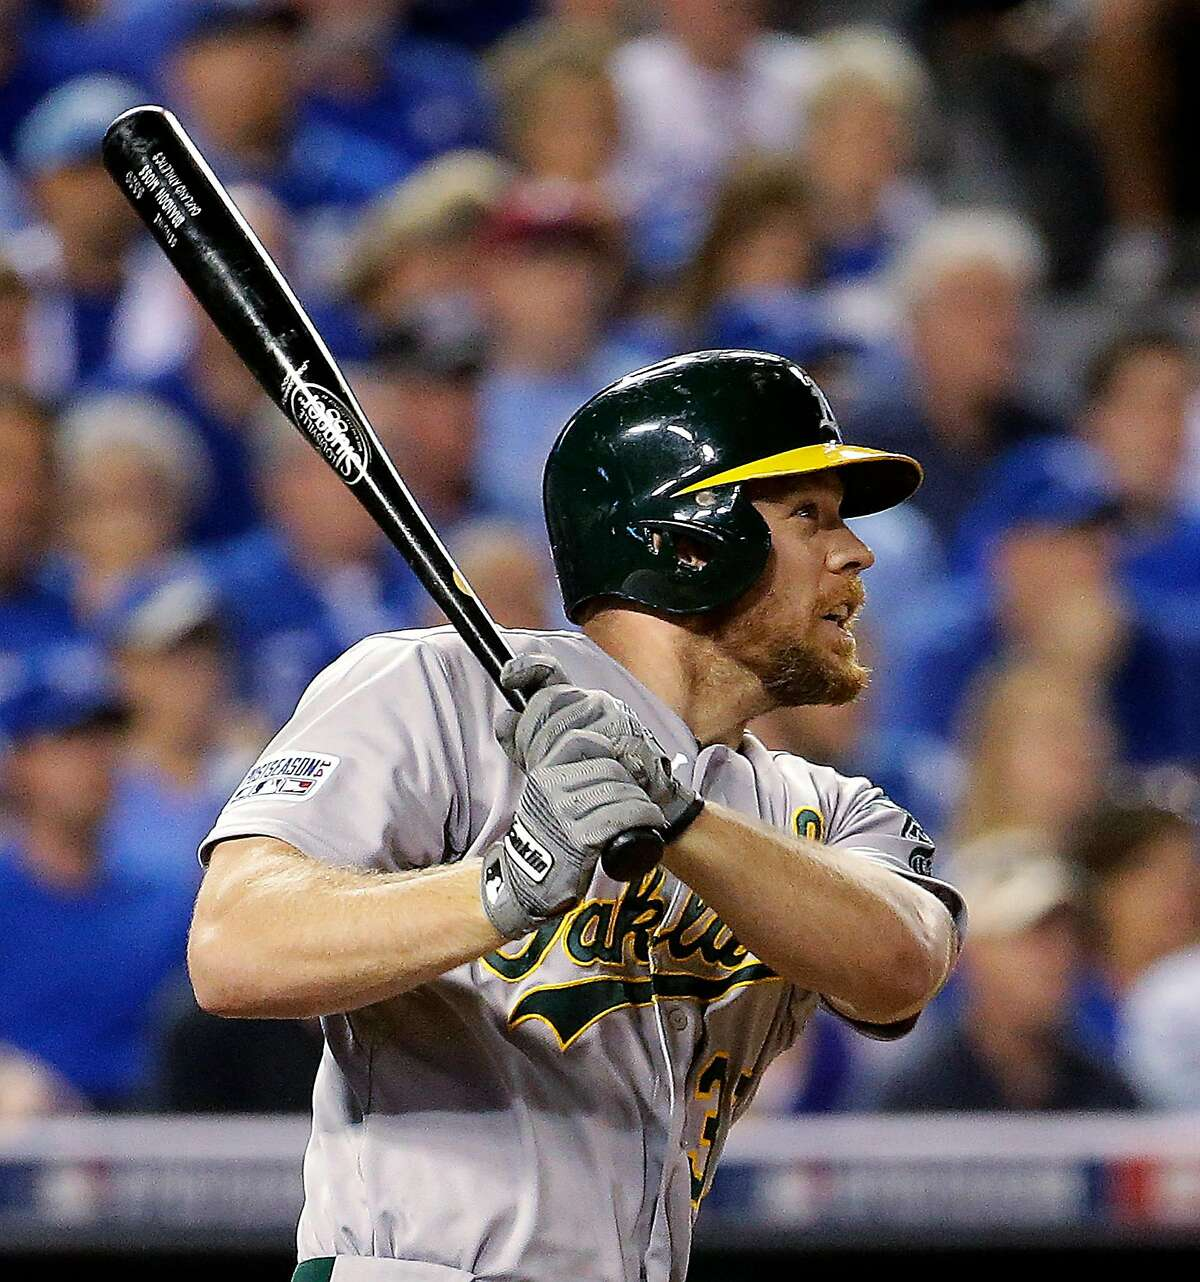 Oakland Athletics' Brandon Moss watches his three-run home run during the sixth inning of the AL wild-card playoff baseball game against the Kansas City Royals on Tuesday, Sept. 30, 2014, in Kansas City, Mo. (AP Photo/Charlie Riedel)